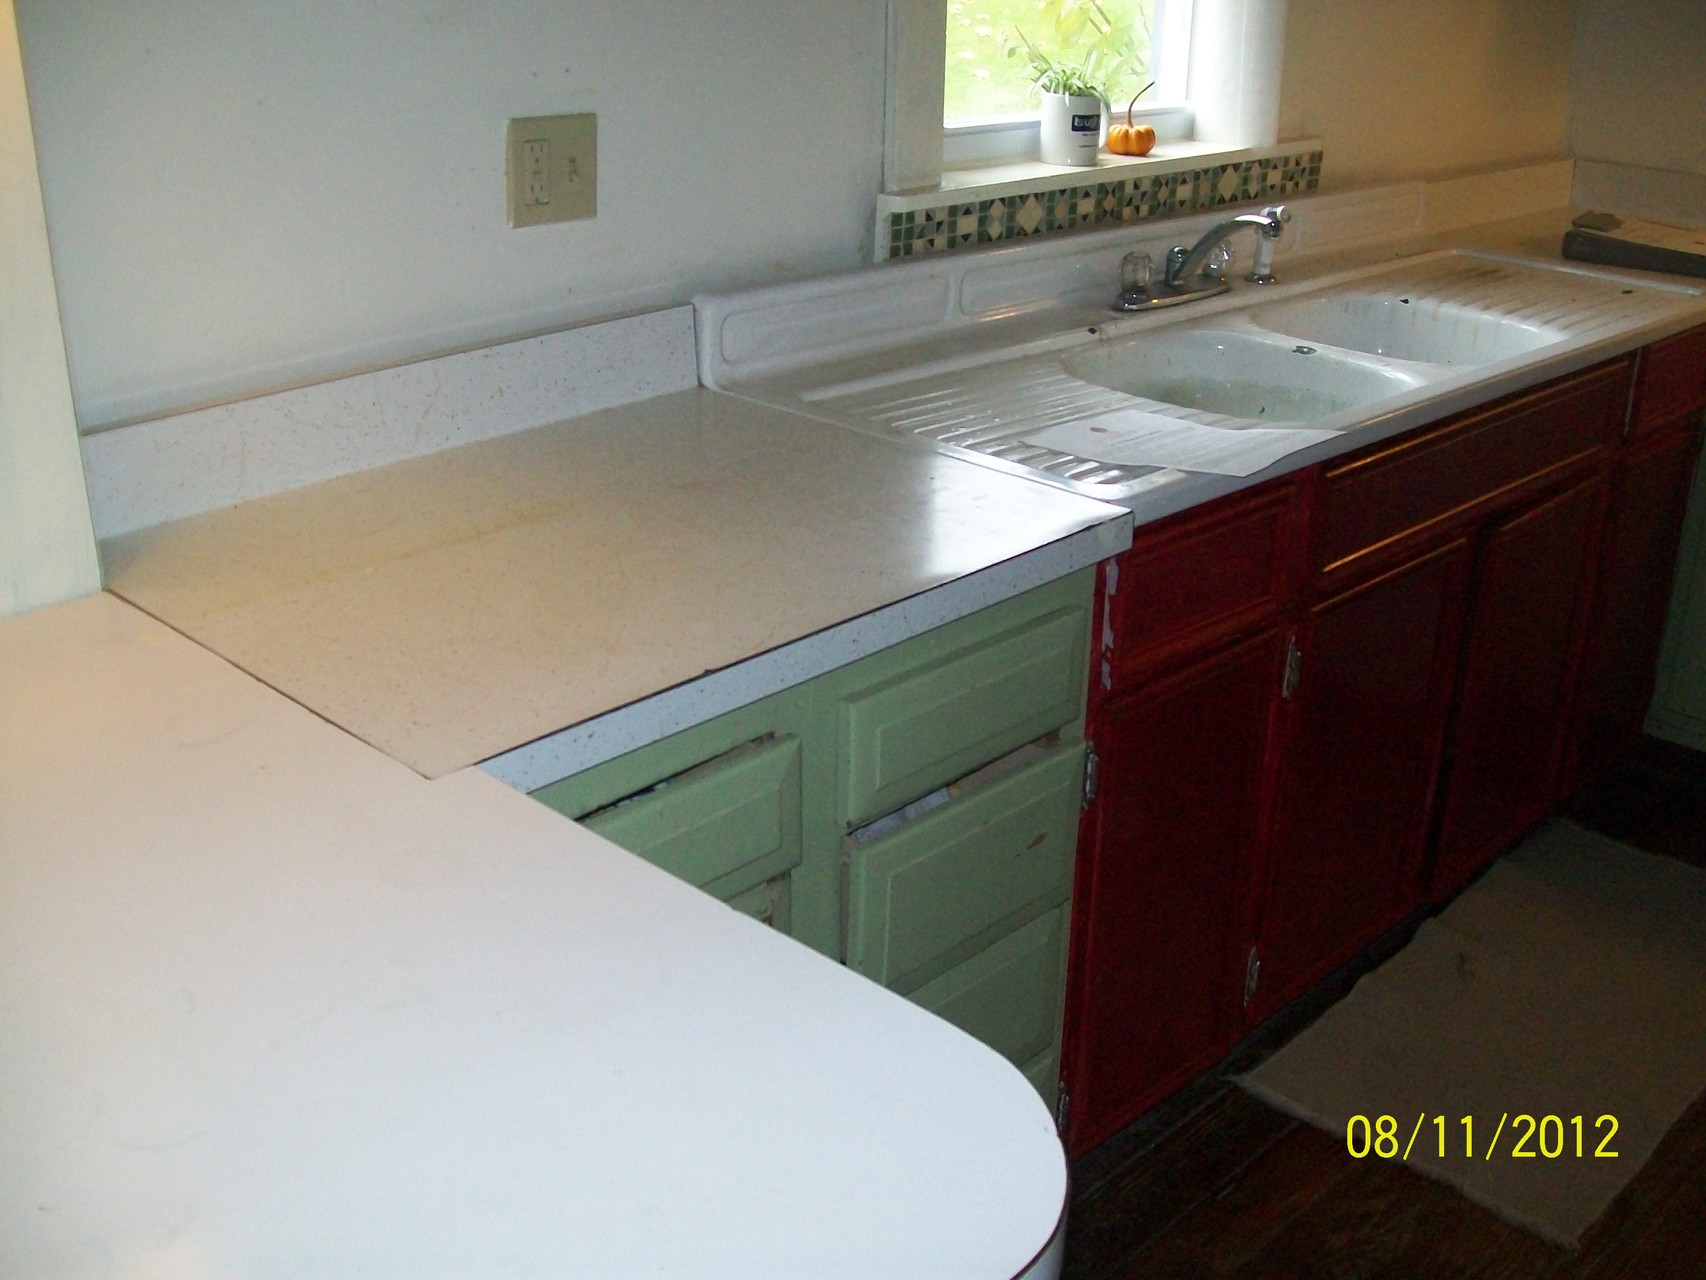 reglaze kitchen sink bench for table countertop resurfacing - dennie's resurfacing, tub & tile ...